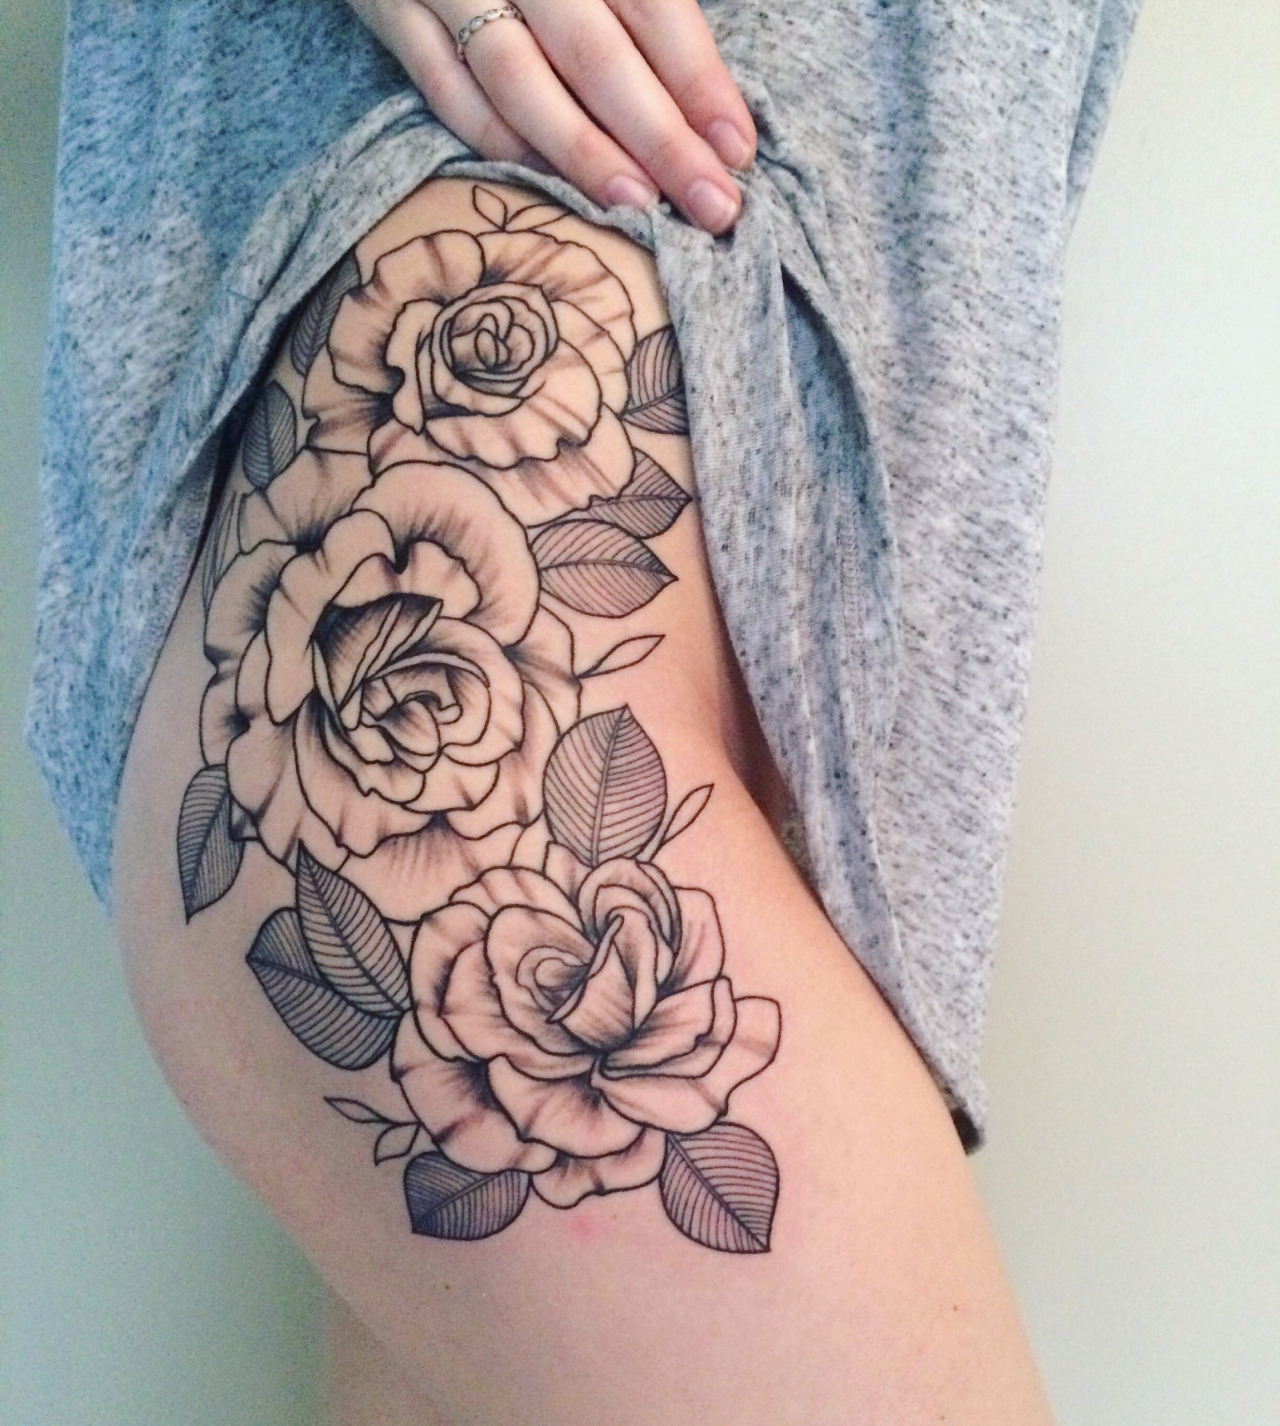 Flower thigh tattoos designs ideas and meaning tattoos for you izmirmasajfo Choice Image